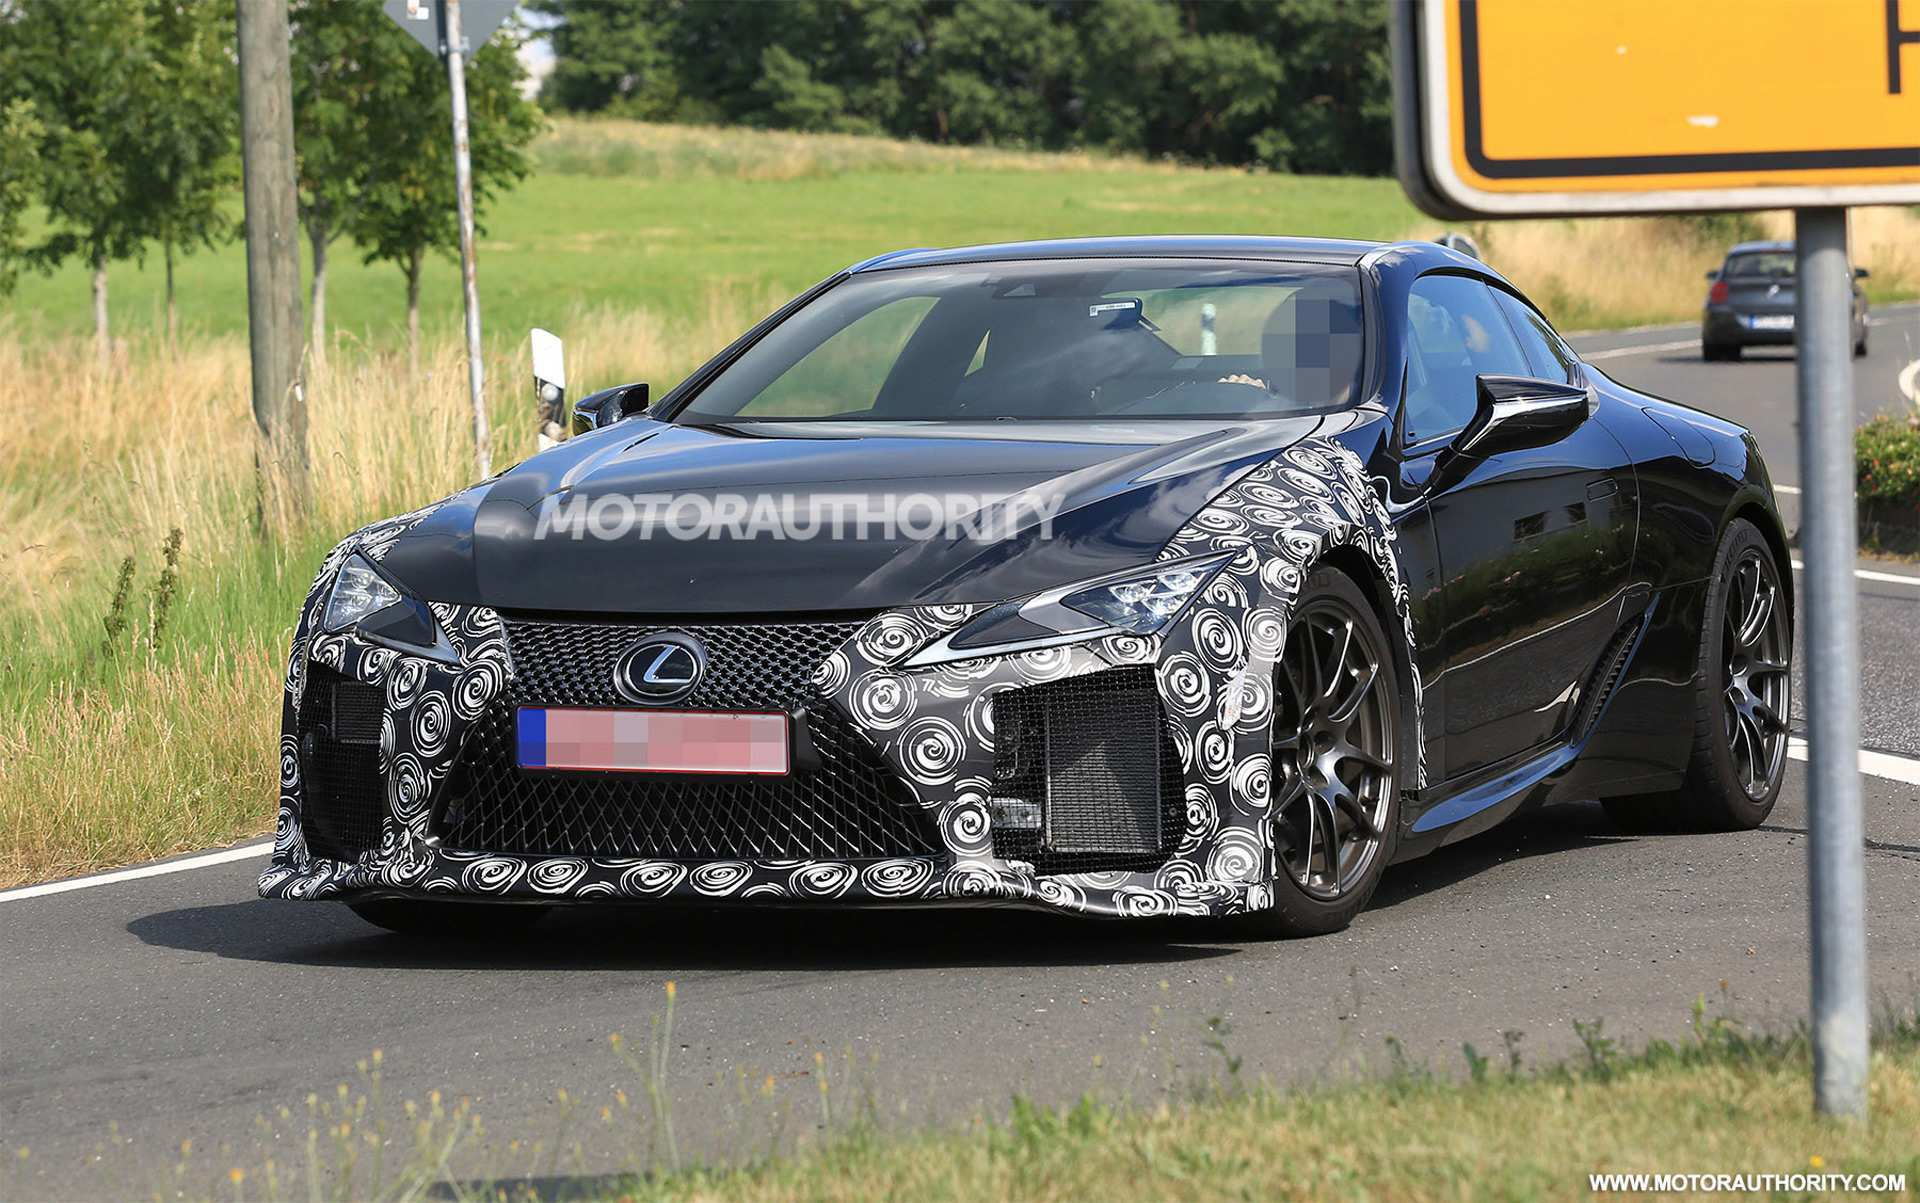 13 Great Lexus Is 2020 Spy Shots Style by Lexus Is 2020 Spy Shots